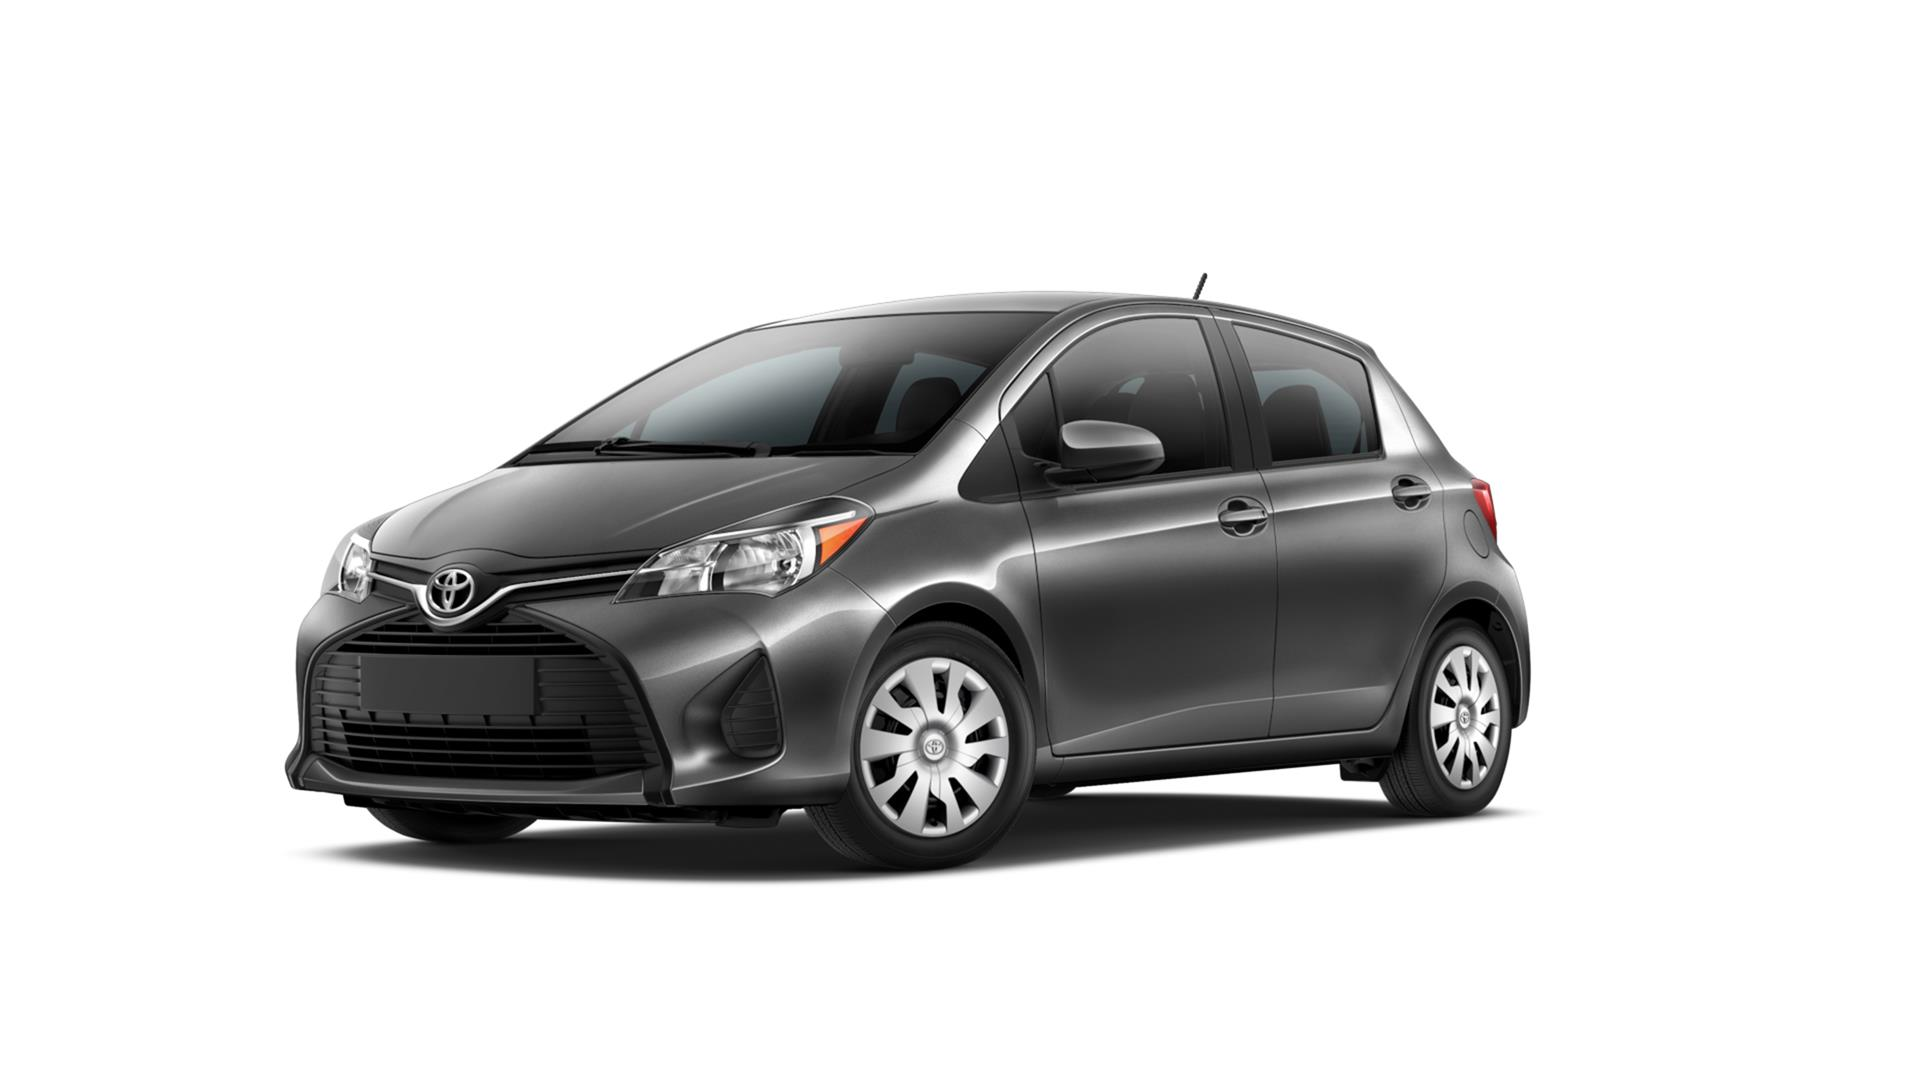 toyota yaris hatchback 2017 hd wallpapers. Black Bedroom Furniture Sets. Home Design Ideas